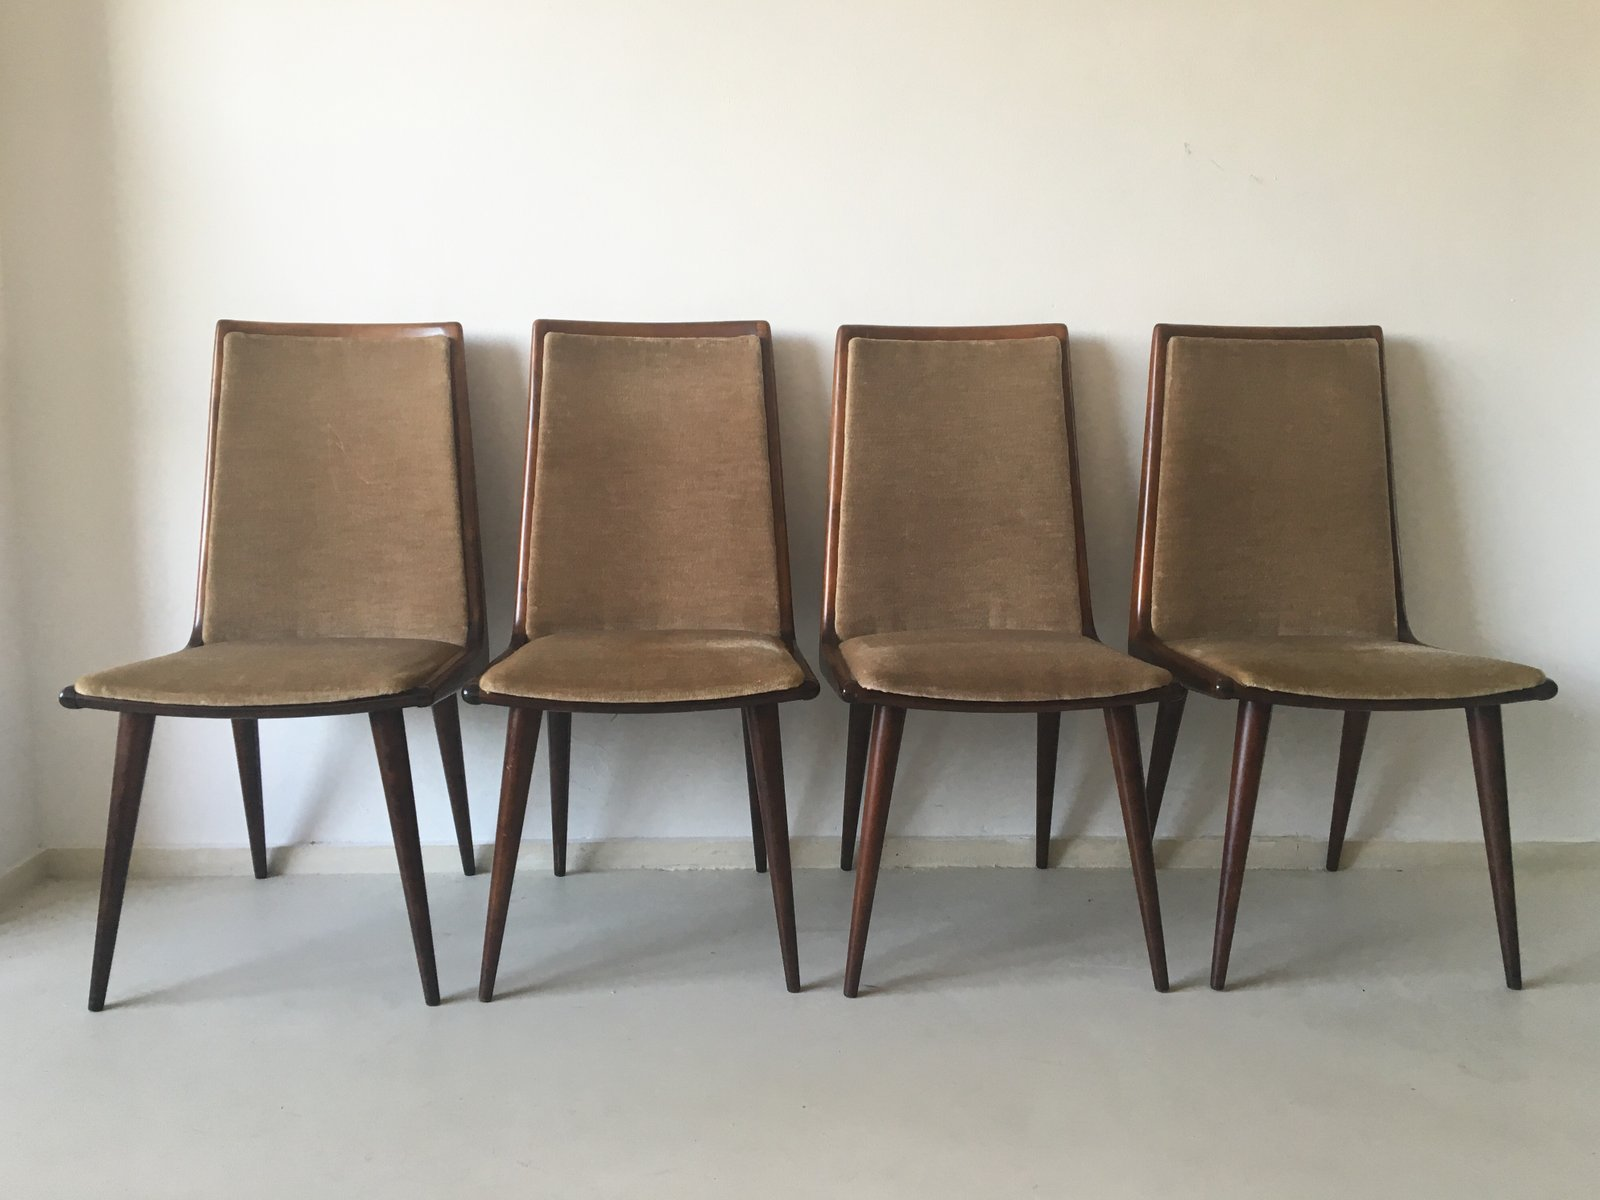 Cherrywood Dining Chairs from Coja Culemborg 1950s Set of 4 for